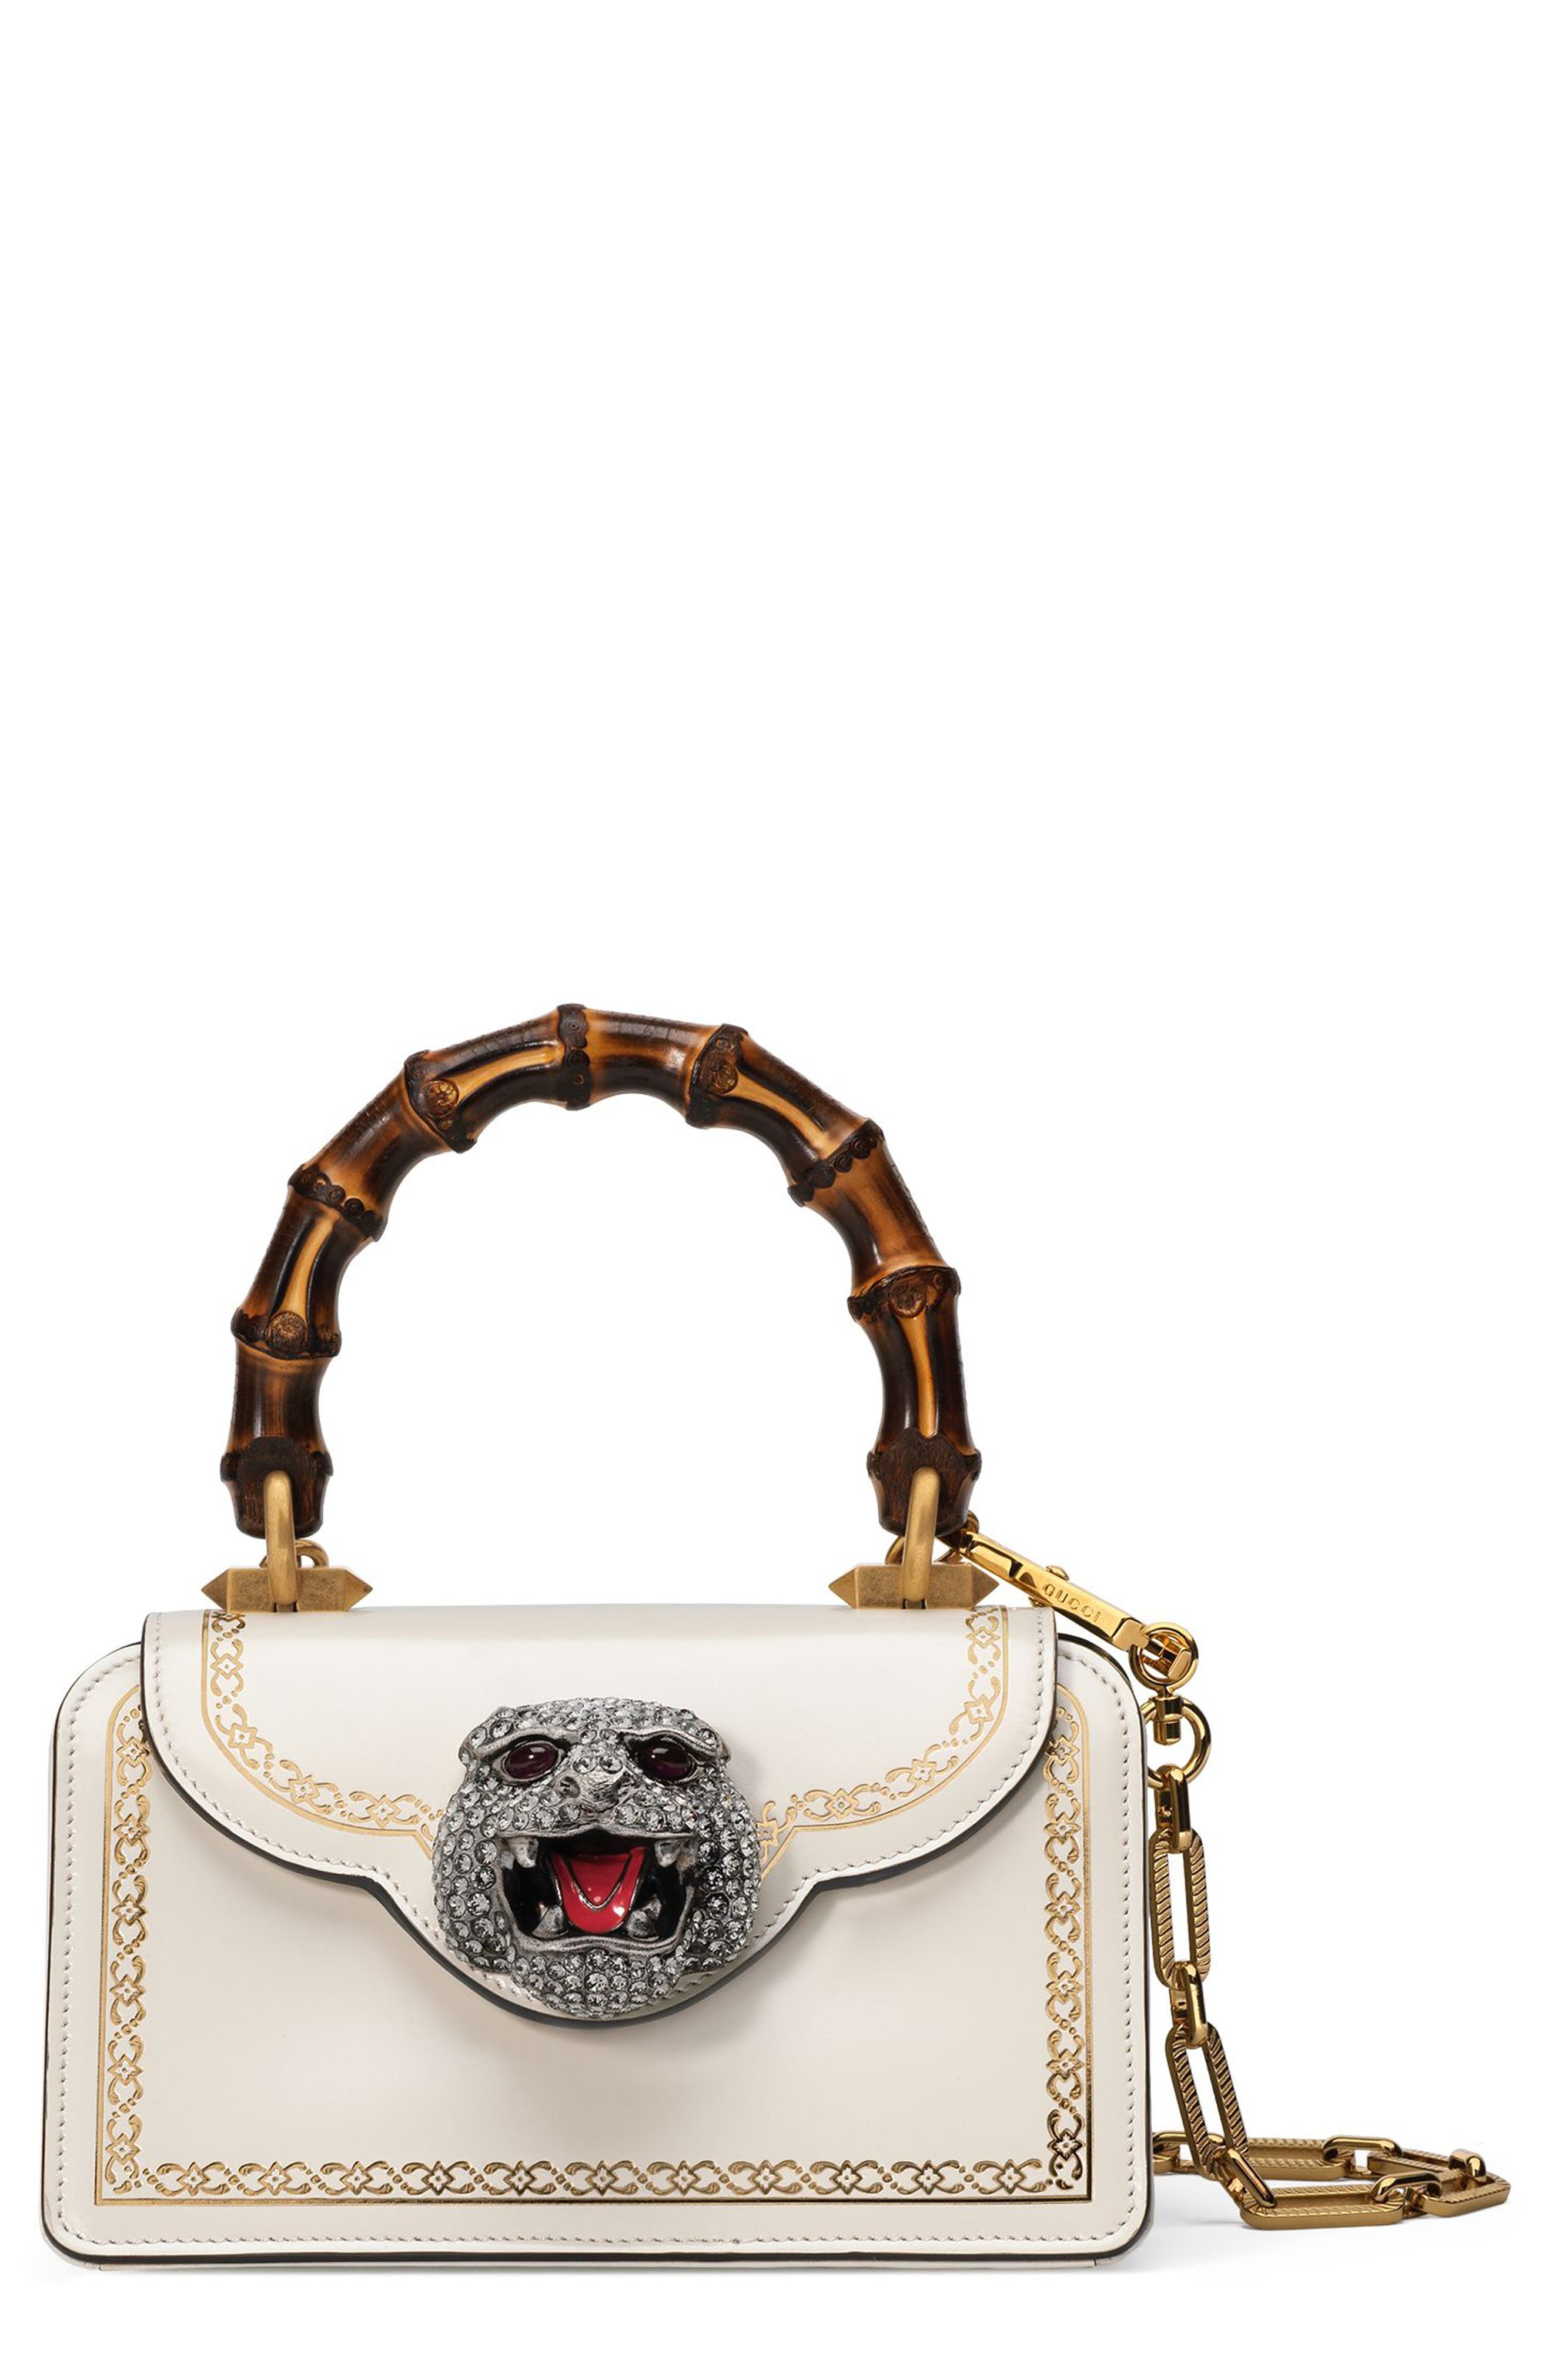 Gucci Mini Gatto Top Handle Leather Satchel